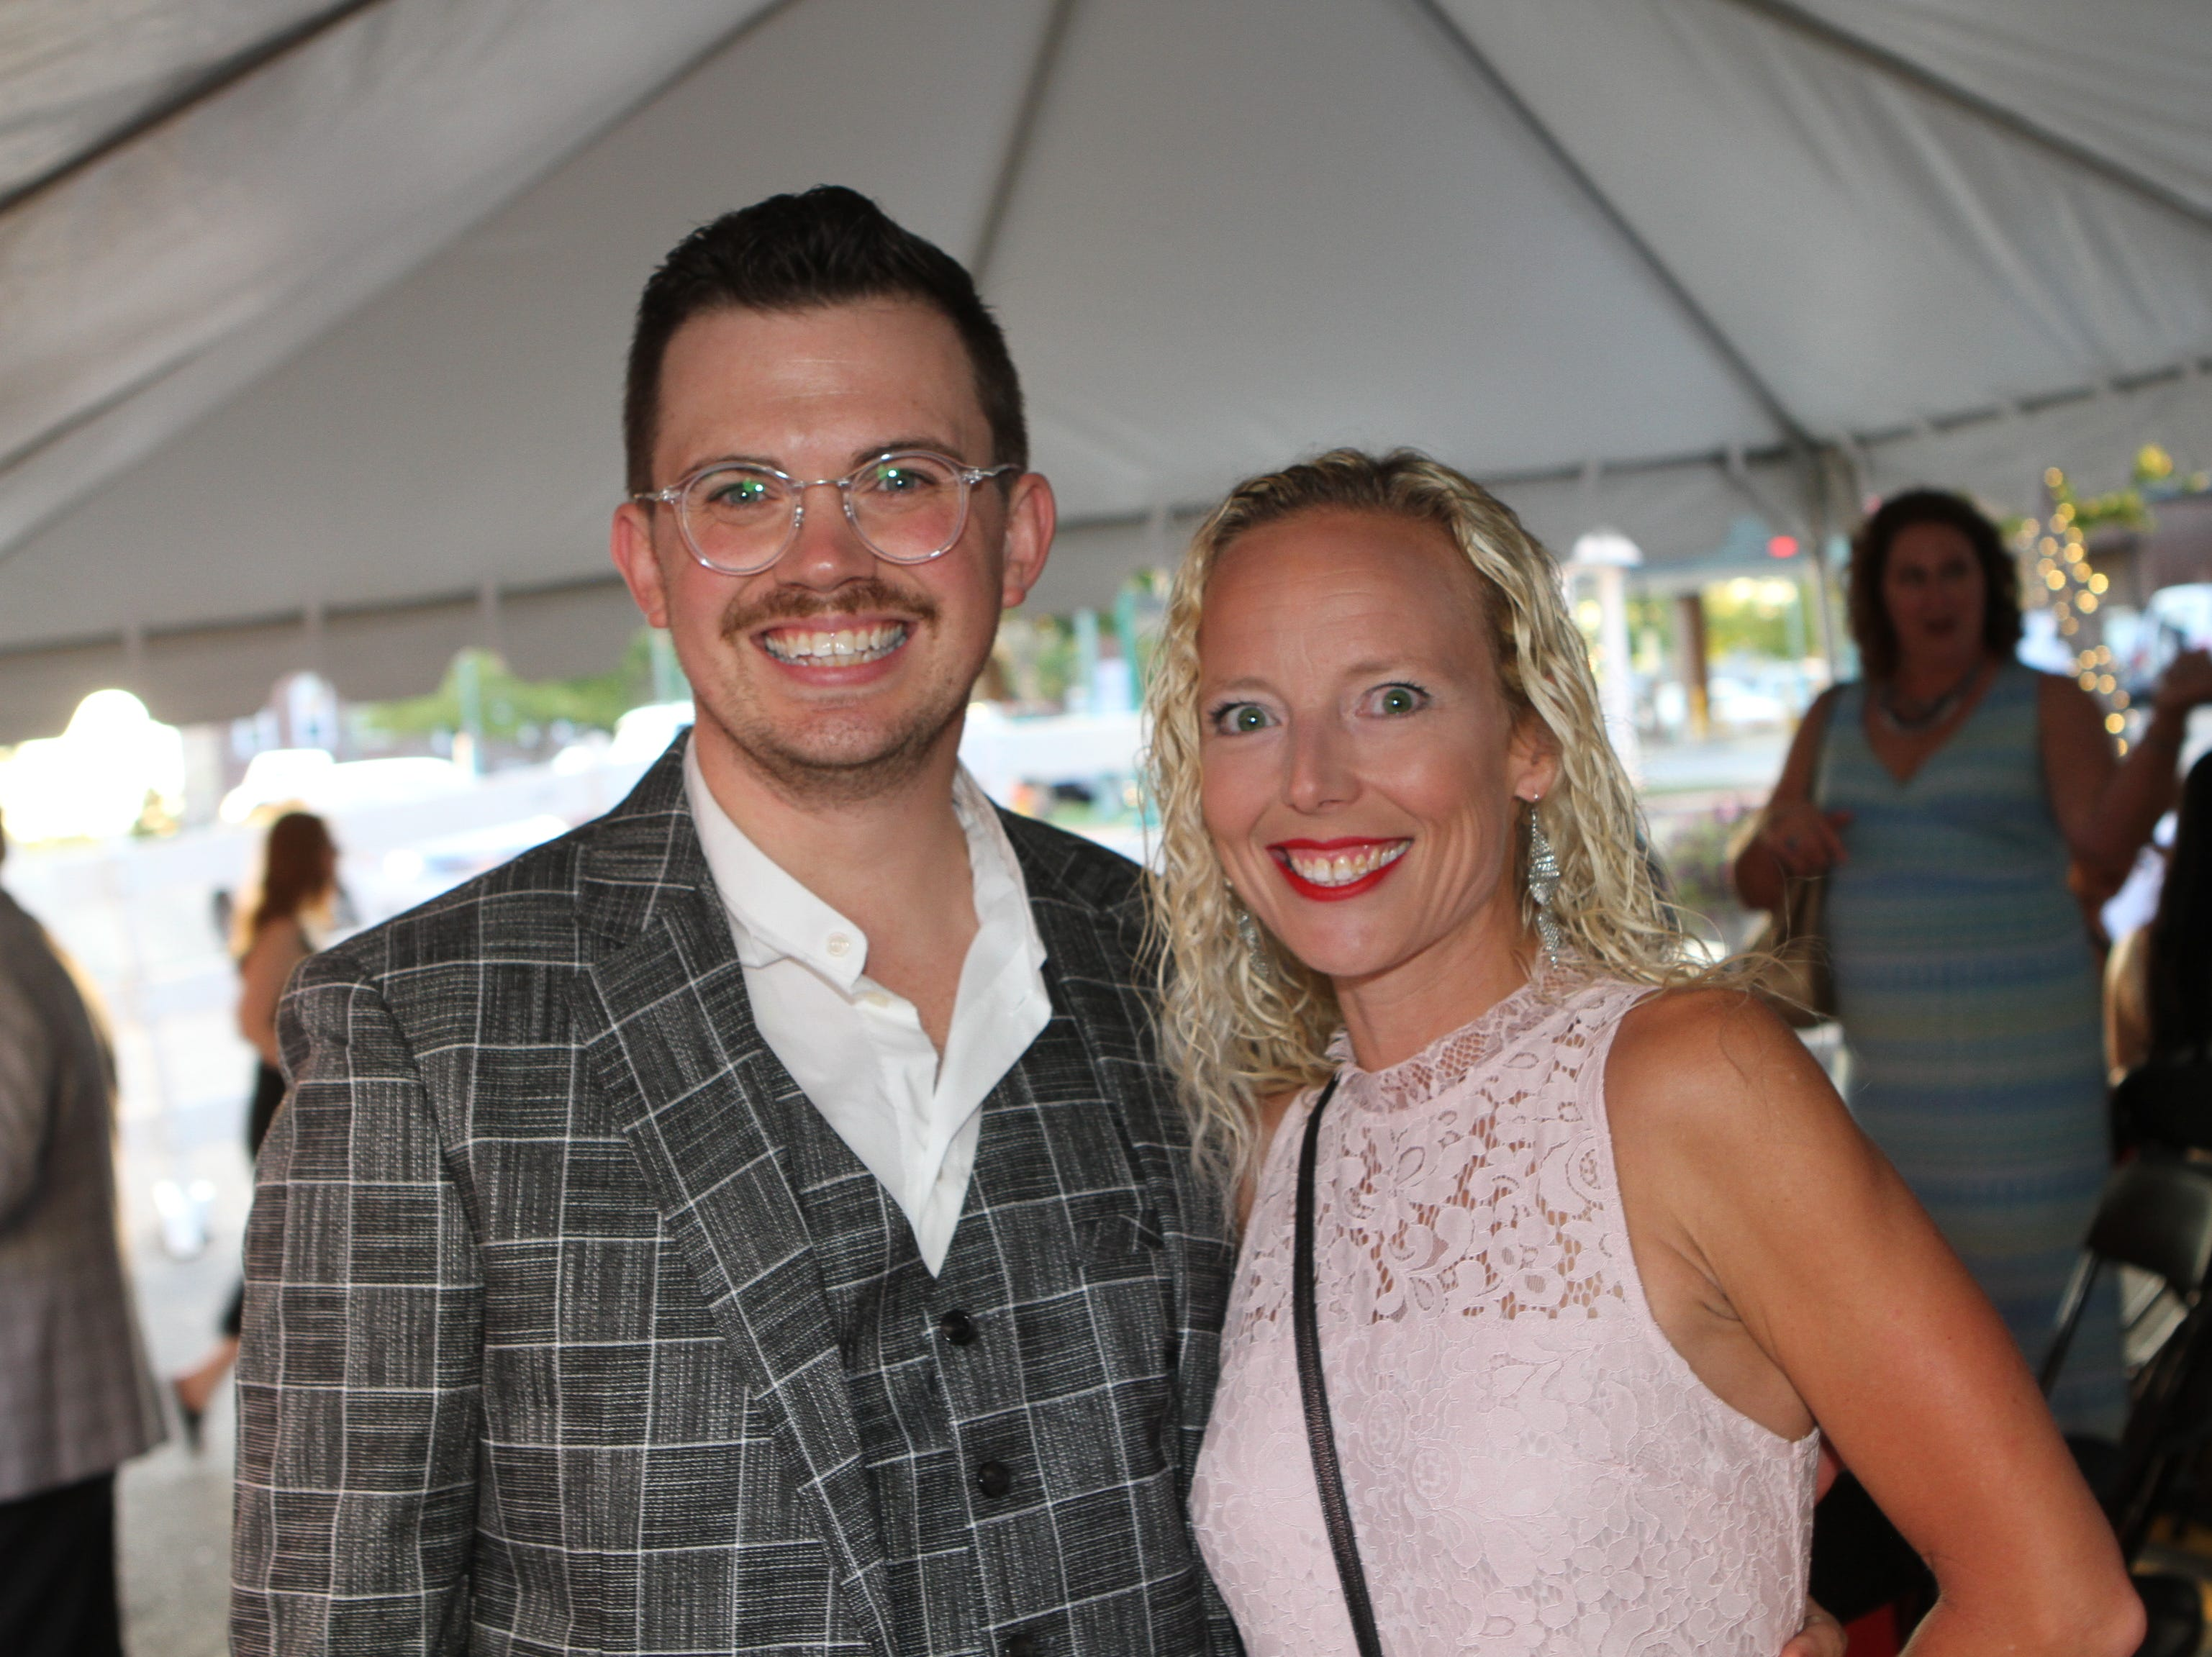 Ryan Bowie and Stacey Streetman at the 36th Annual Roxy Gala on Saturday, Sept. 15, 2018.